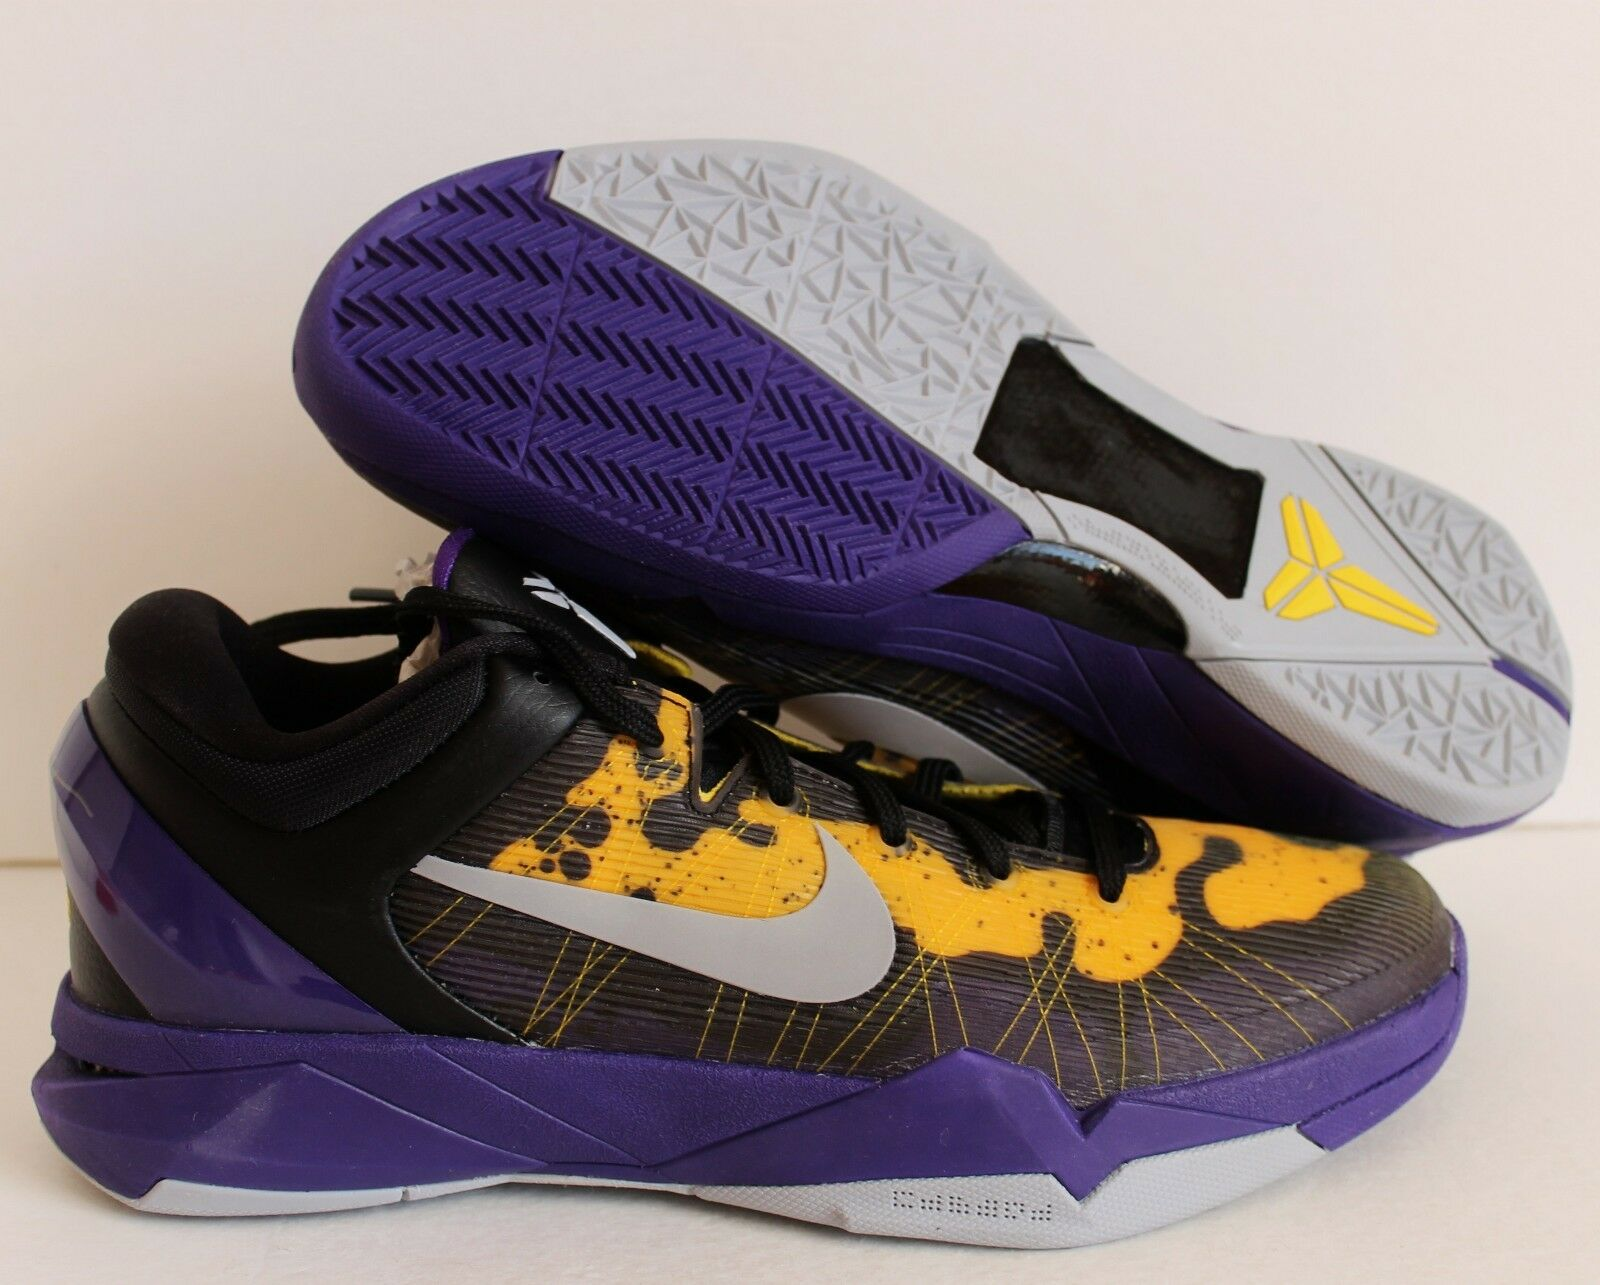 NIKE 2011 ZOOM KOBE VII 7 SYSTEM PURPLE-YELLOW-BLACK Price reduction Great discount